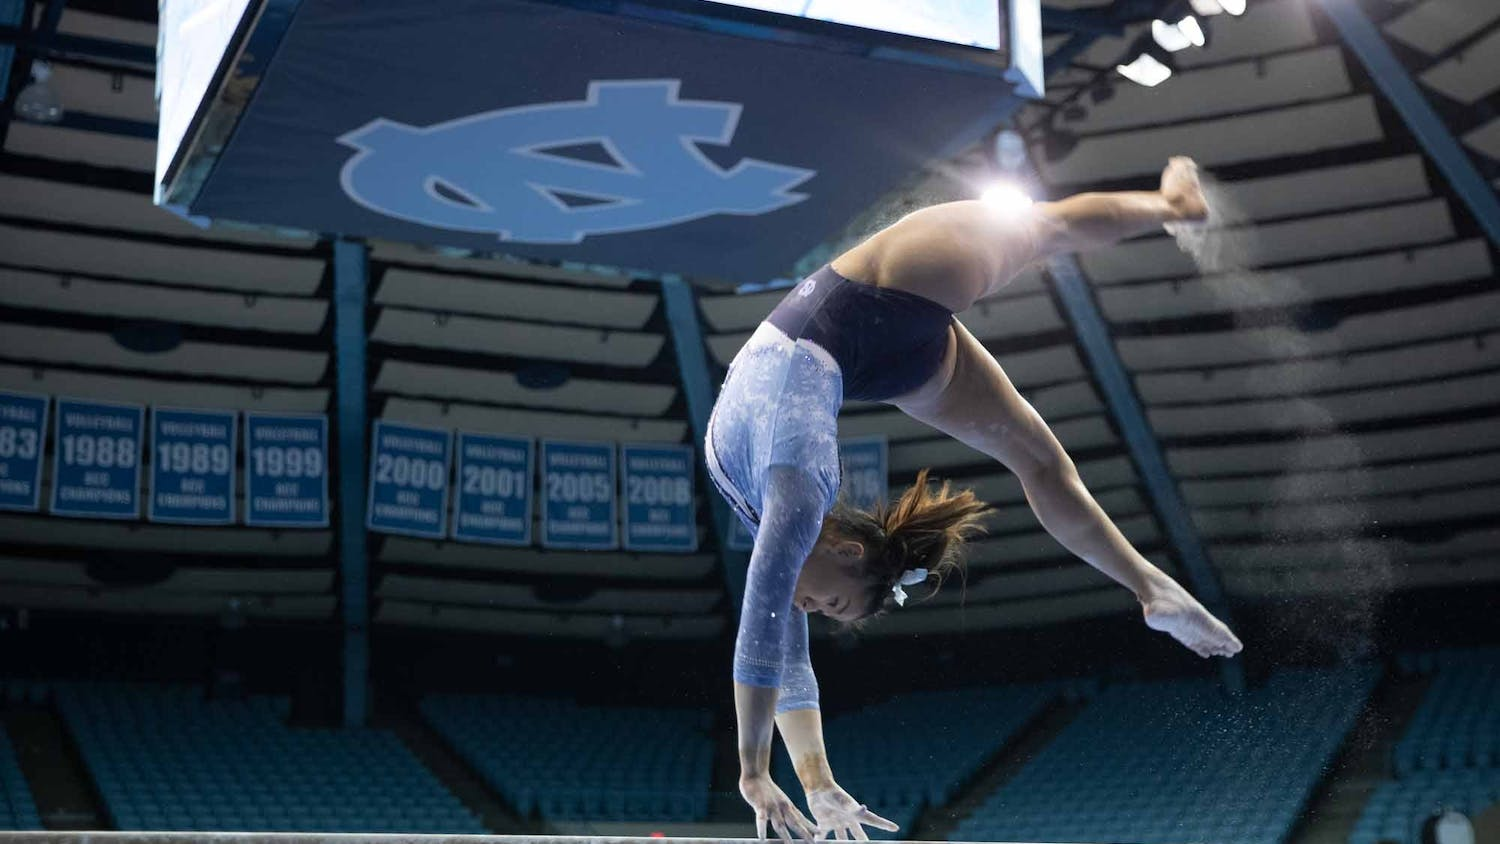 Sophomore Emery Summey performs her balance beam routine during a meet against George Washington in Carmichael Arena on Friday, Feb. 28, 2020. The Tar Heels placed first against the Colonials.